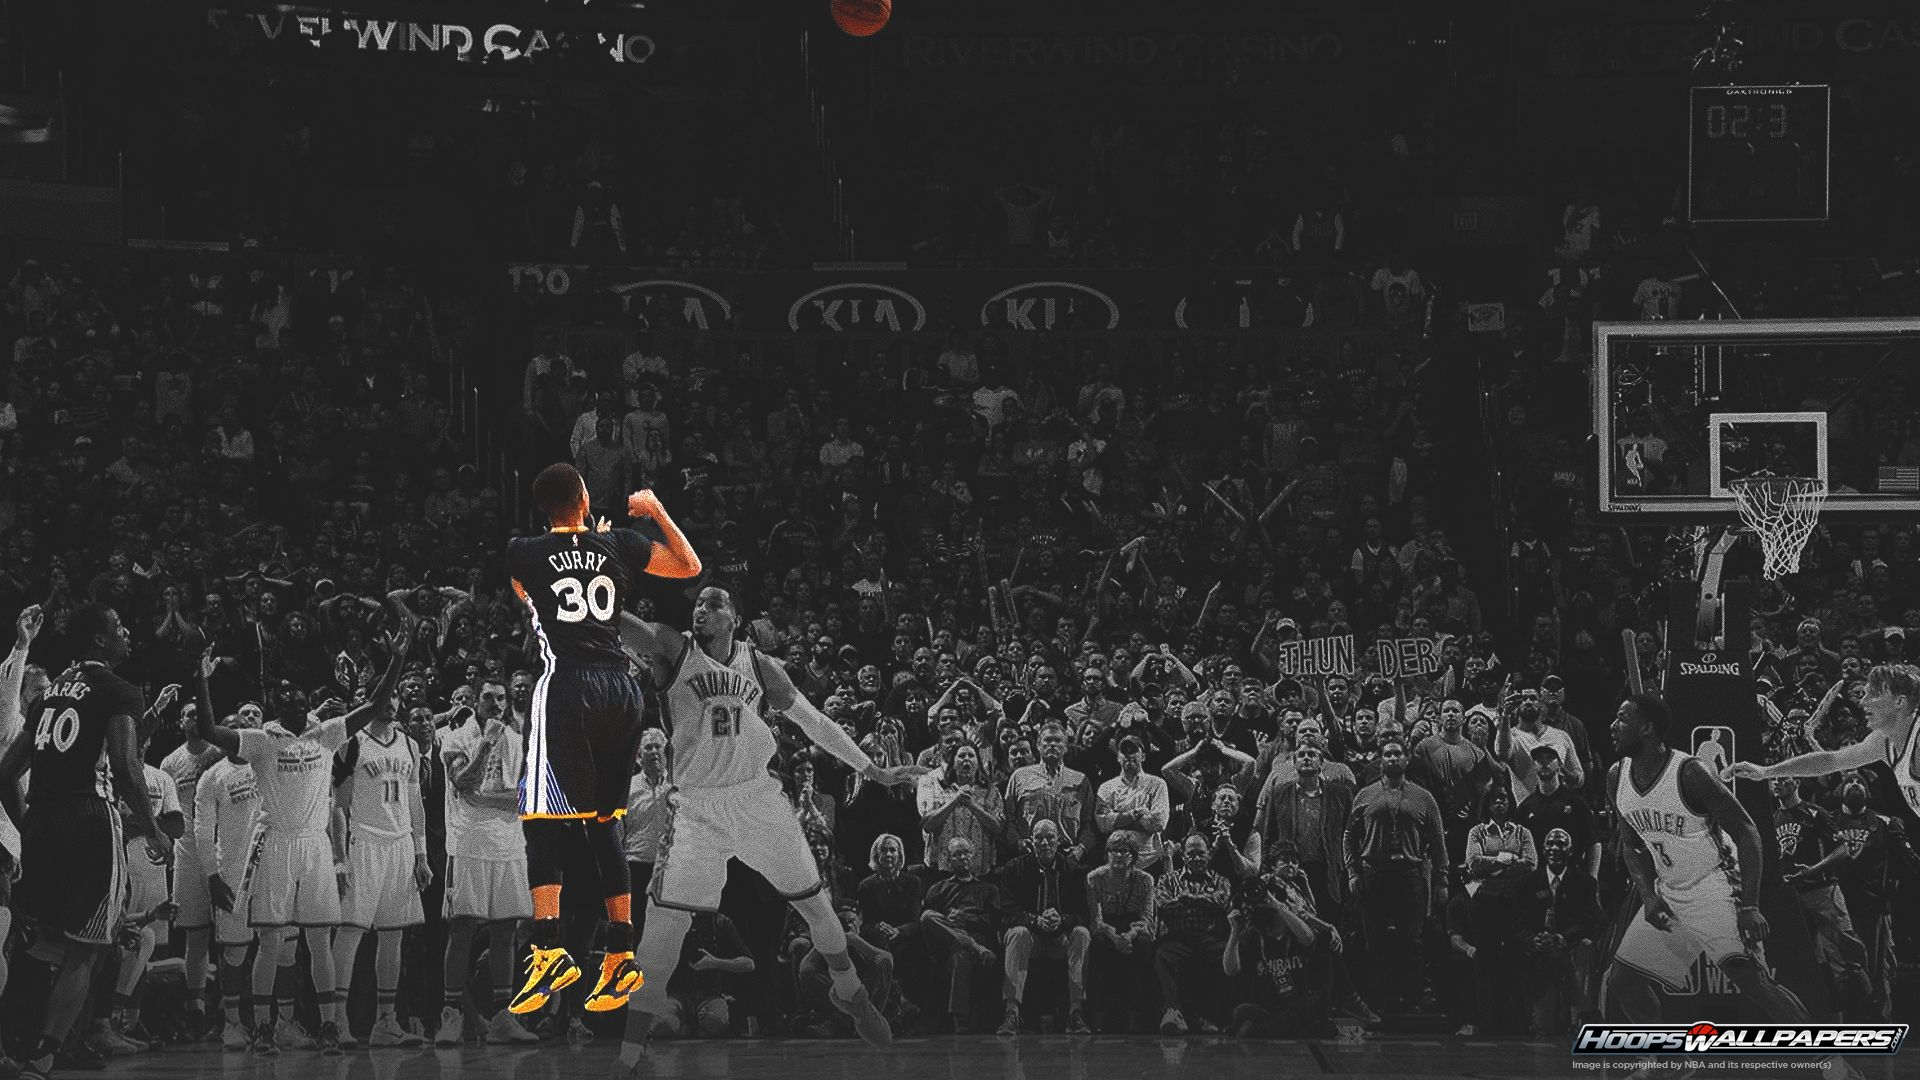 Curry Wallpaper HD for desktop 8 Nba wallpapers, Curry